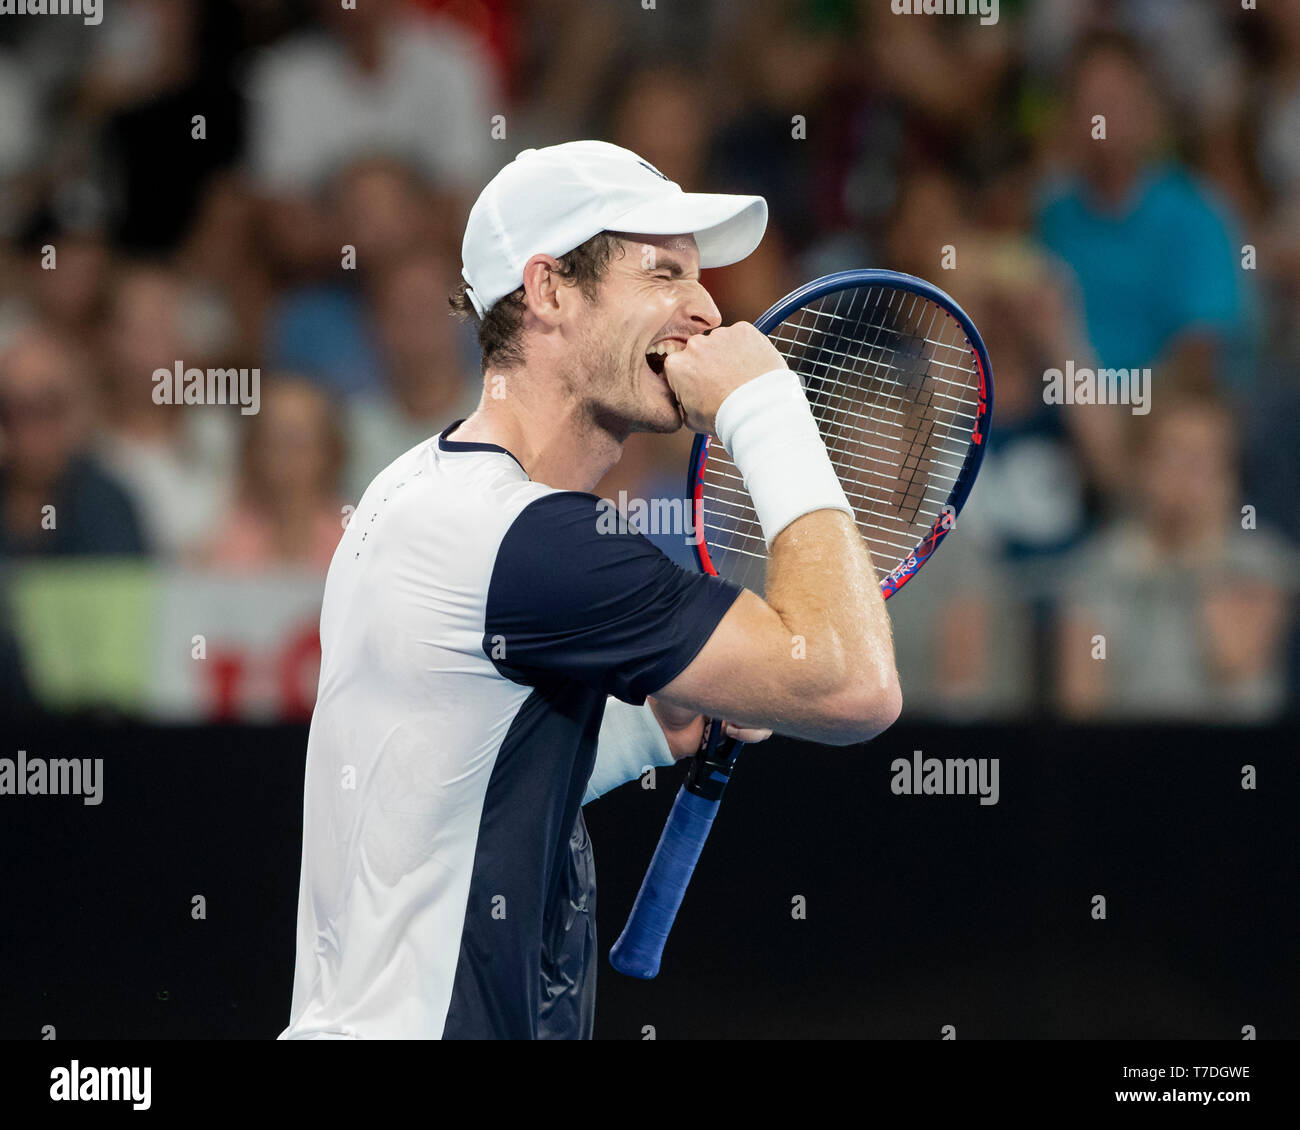 British tennis player Andy Murray reacting after losing point during Australian Open 2019 tennis tournament, Melbourne Park, Melbourne, Victoria, Aust - Stock Image